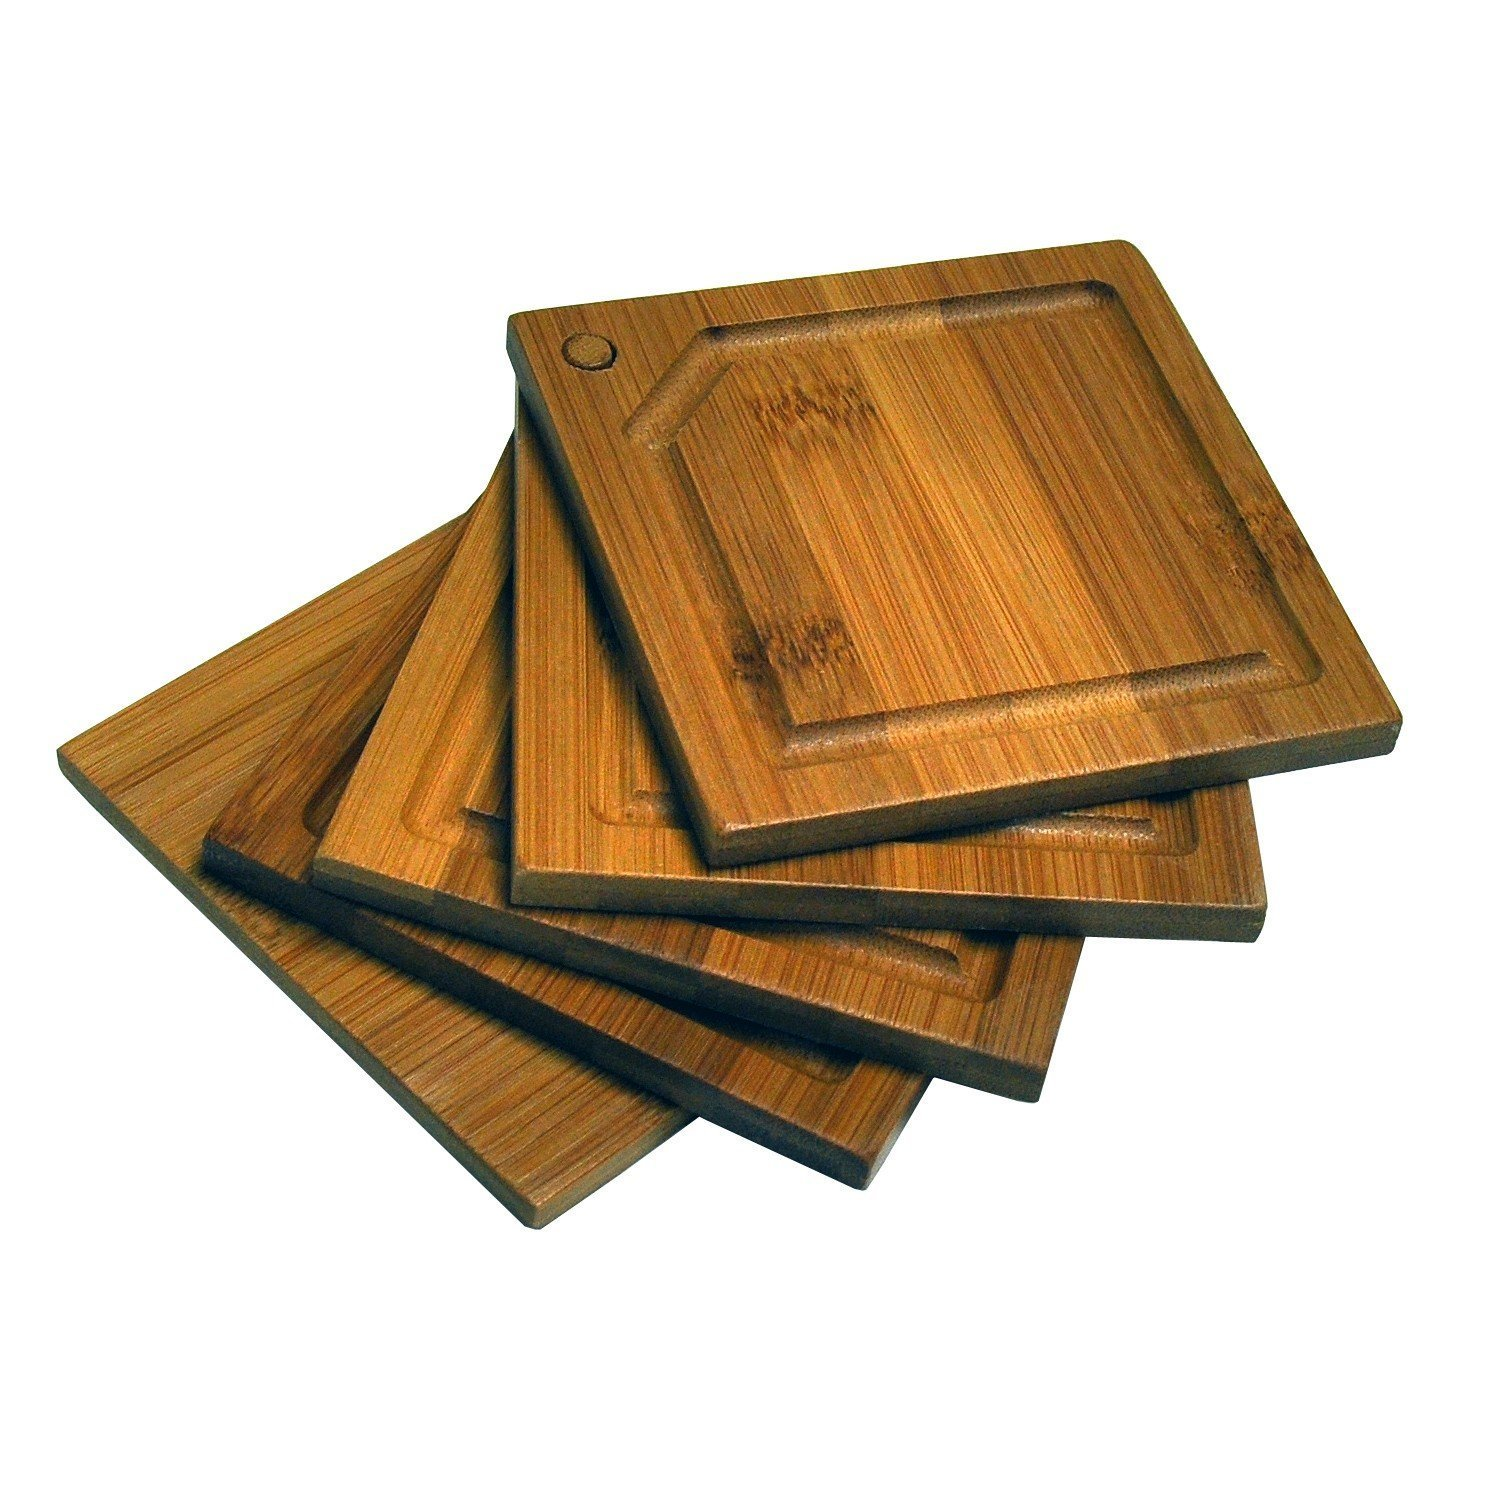 Healthpro Bar Coaster Set Super Package, Includes 5 Piece Organic Moso Bamboo Heavy Duty Round Coaster Set And 5 Piece Organic Moso Bamboo Heavy Duty Square Coaster Set